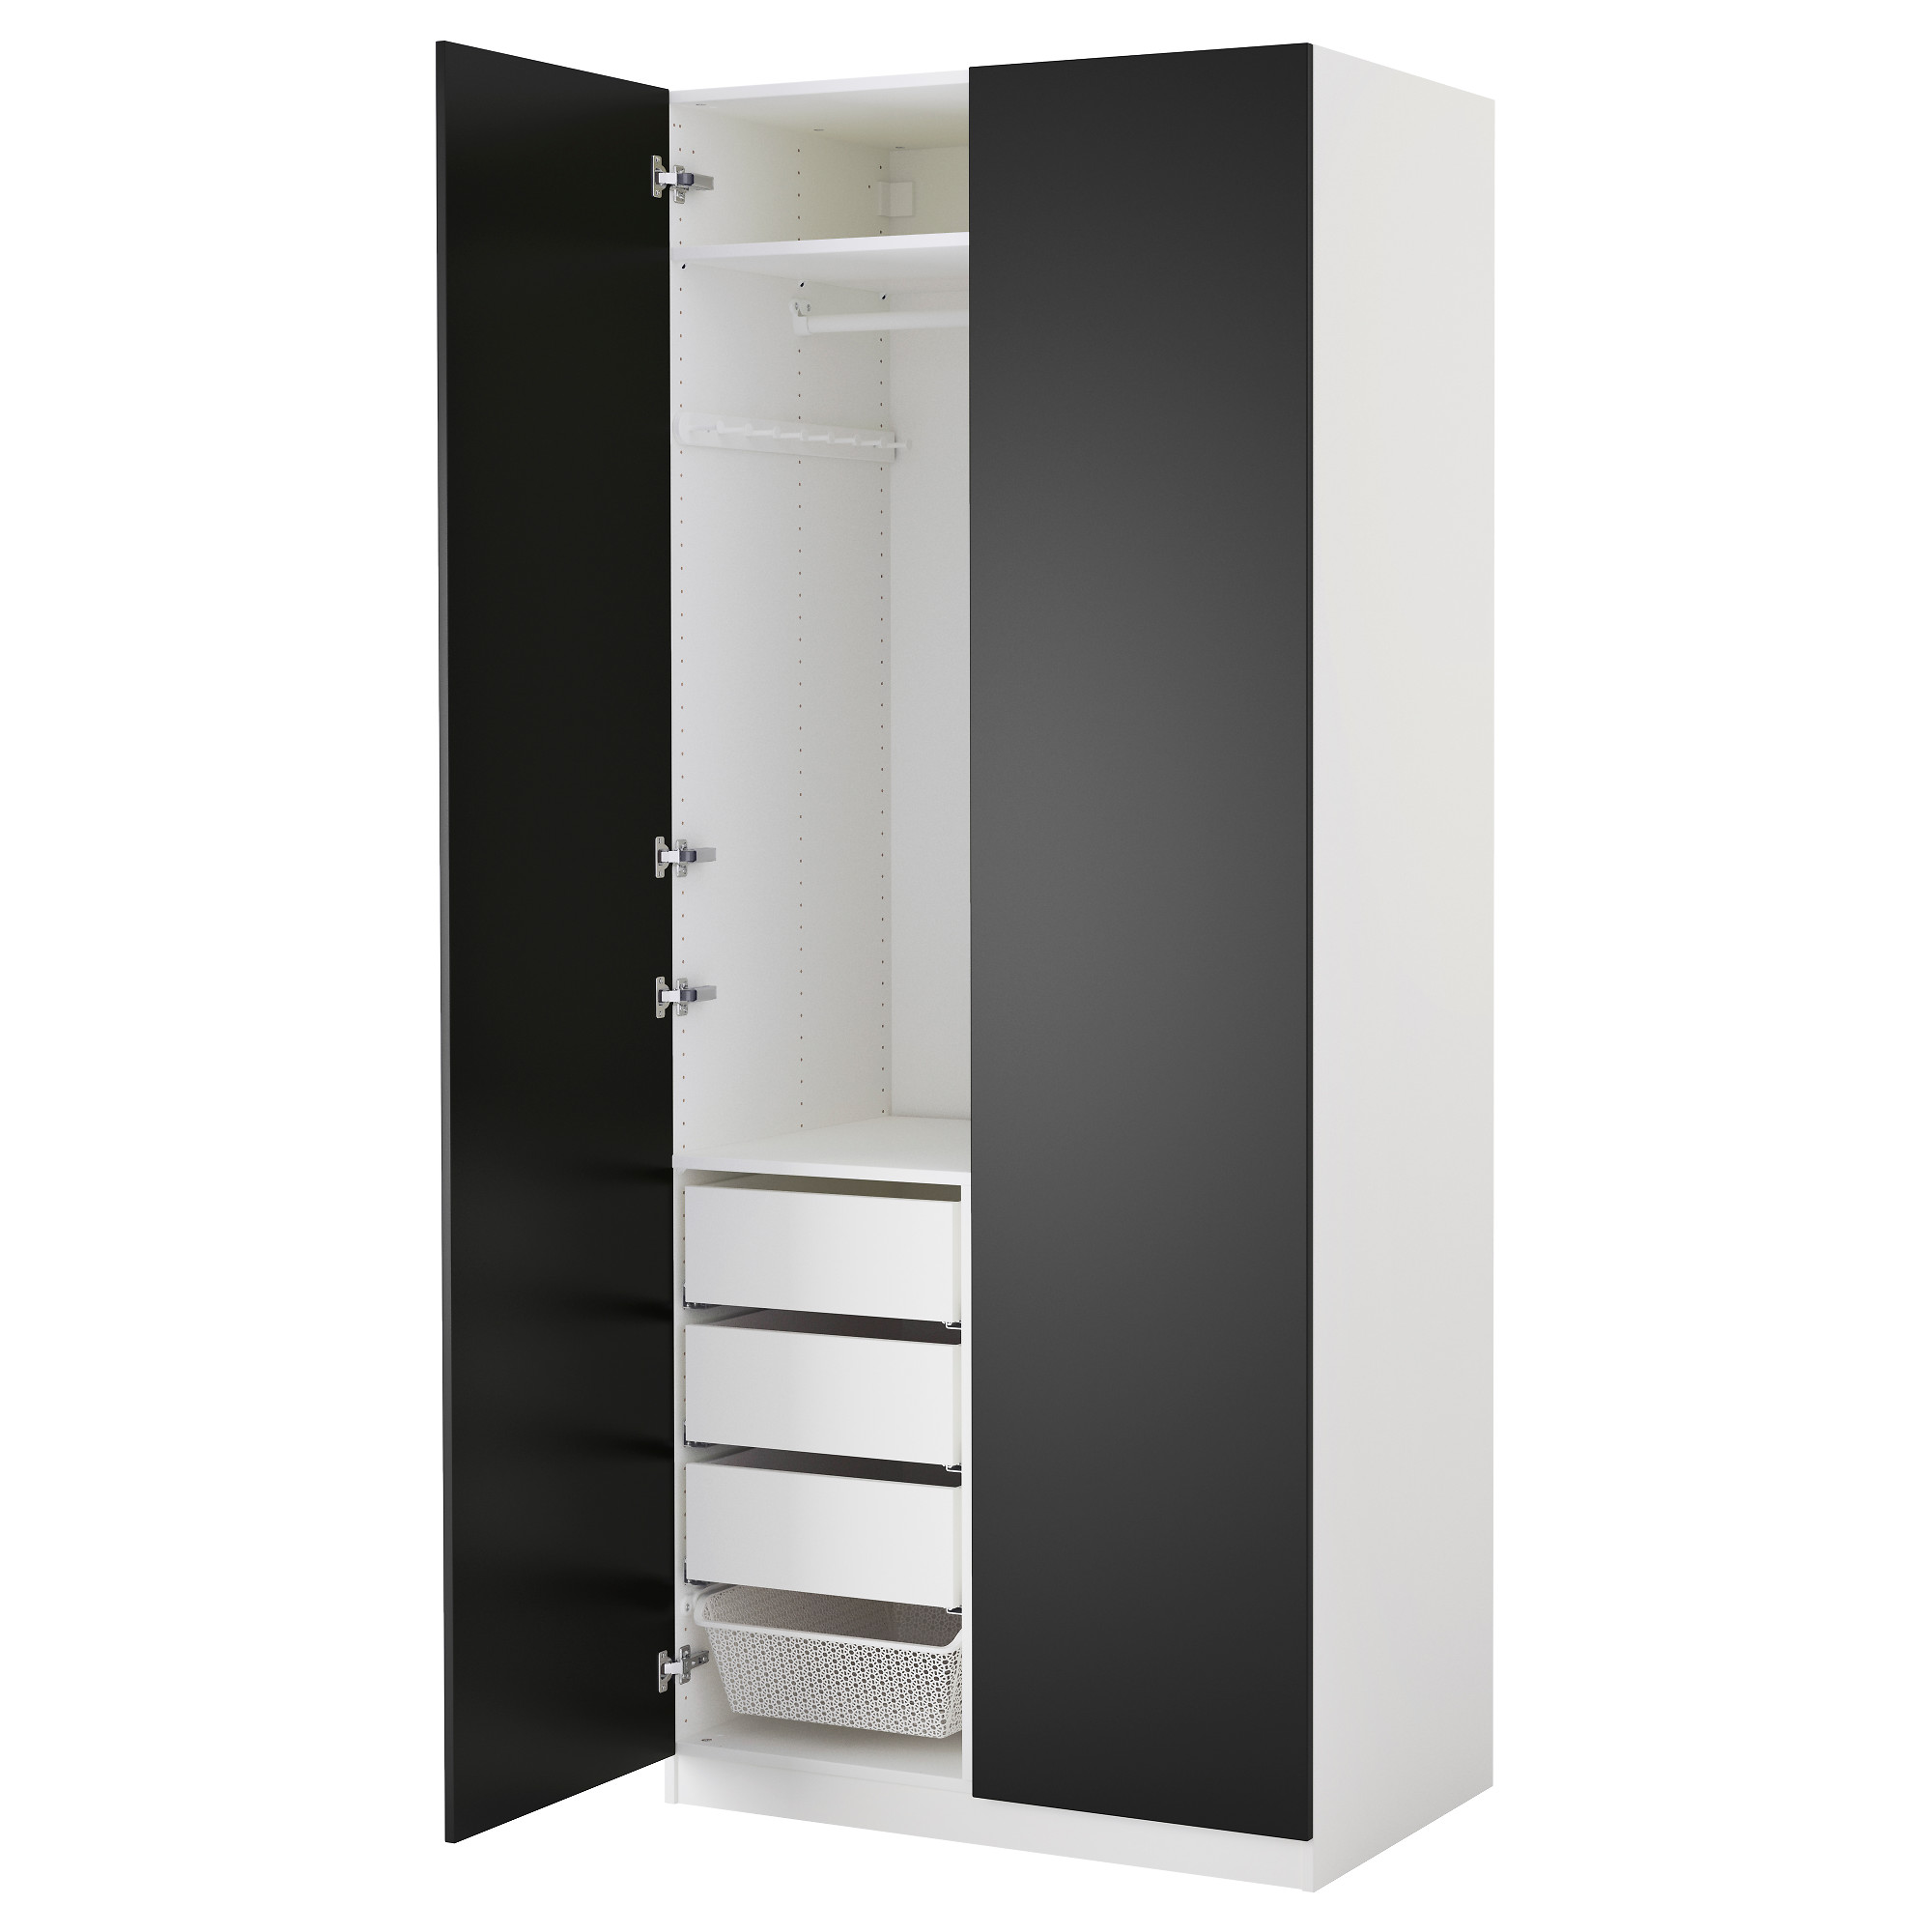 casier vestiaire ikea excellent ikea chiffon poussire armoire simples armoires de finition. Black Bedroom Furniture Sets. Home Design Ideas